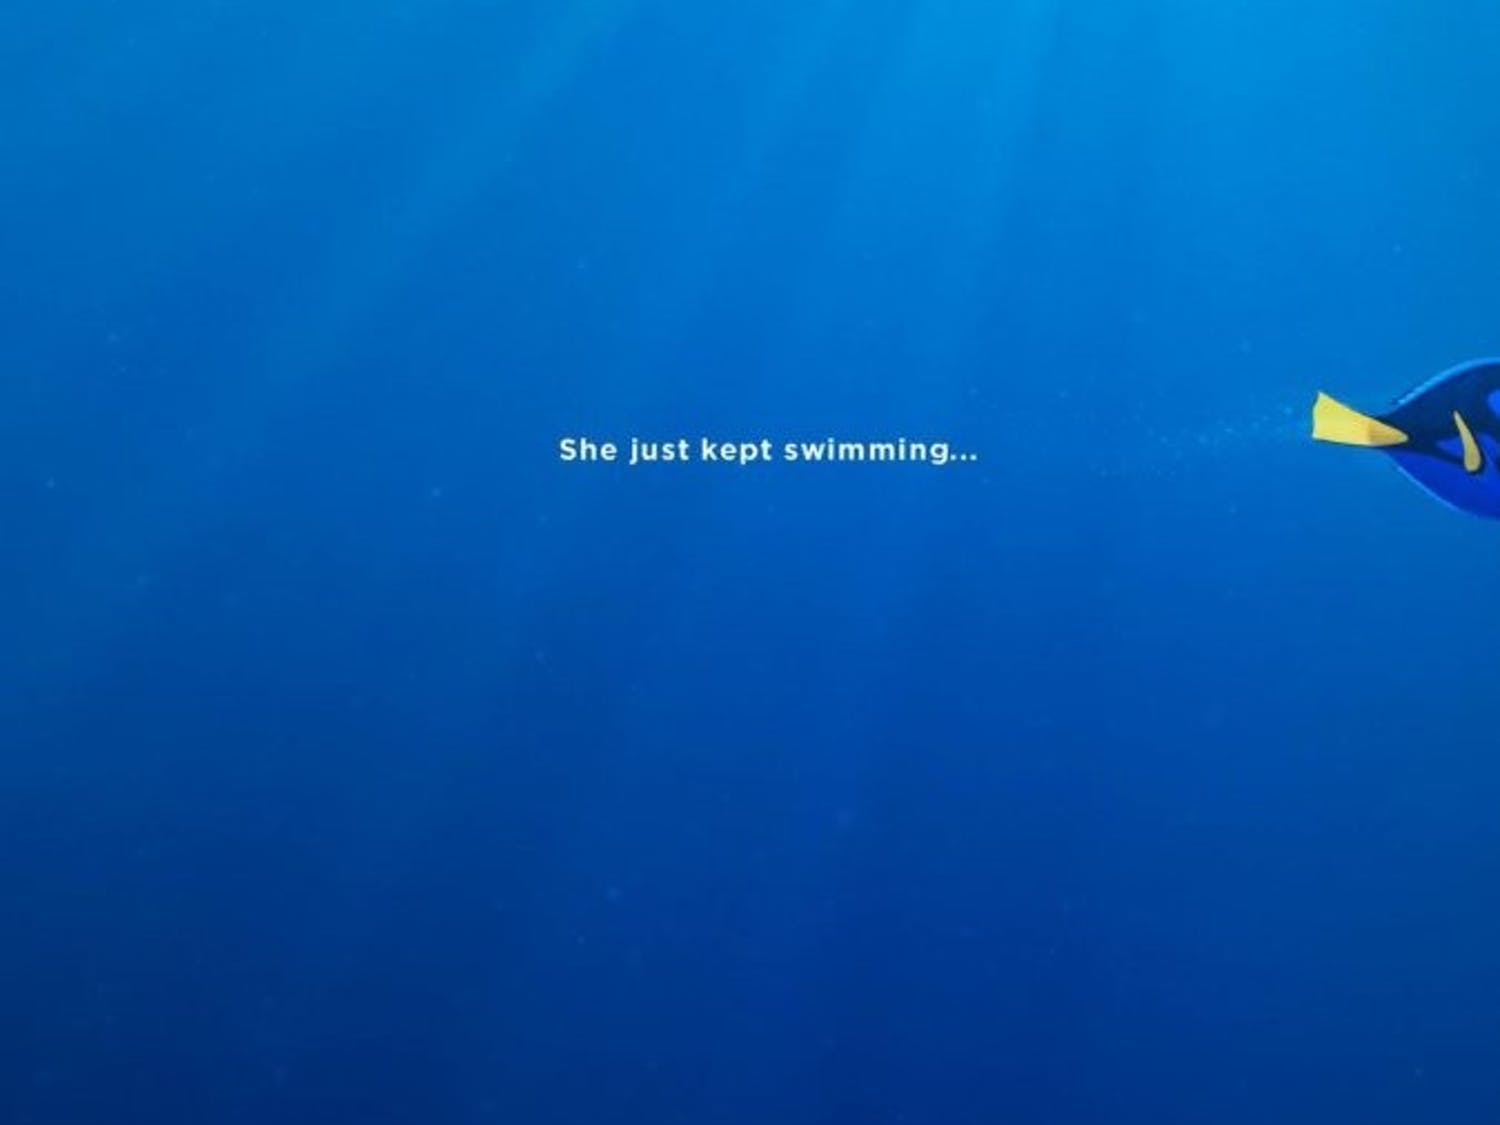 """Thirteen years after introducing the lovable and forgetful Blue Tang in """"Finding Nemo,"""" Disney Pixar released """"Finding Dory,"""" a quirky sequel that gathered much anticipation."""